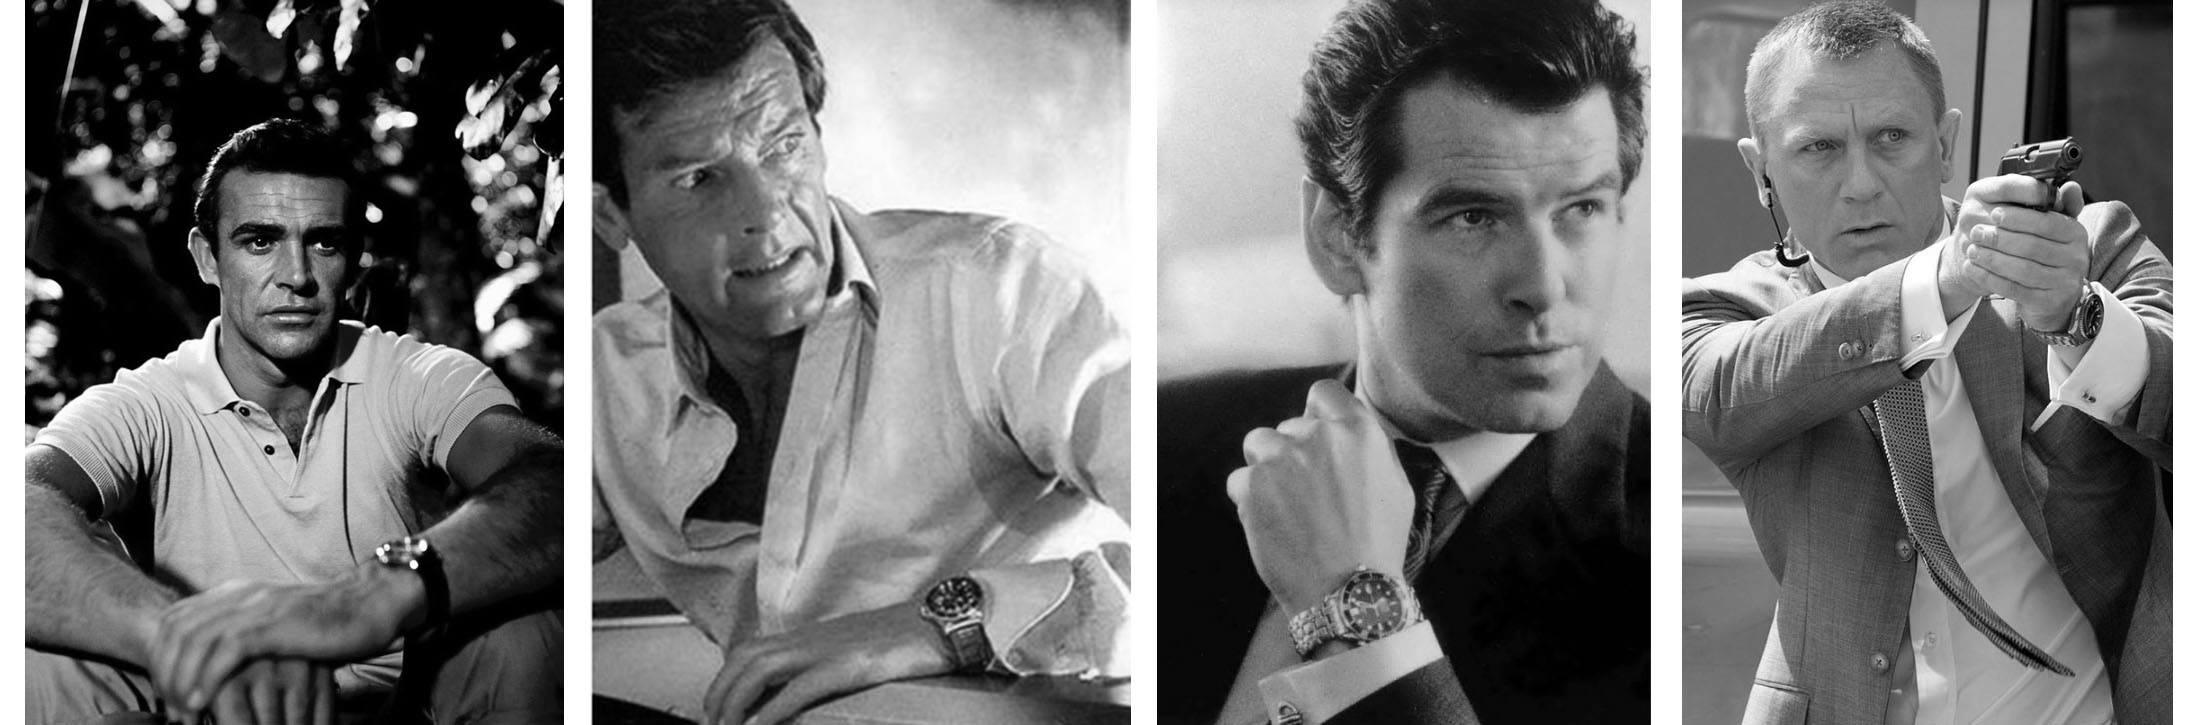 James Bond Watches Rolex Omega complication